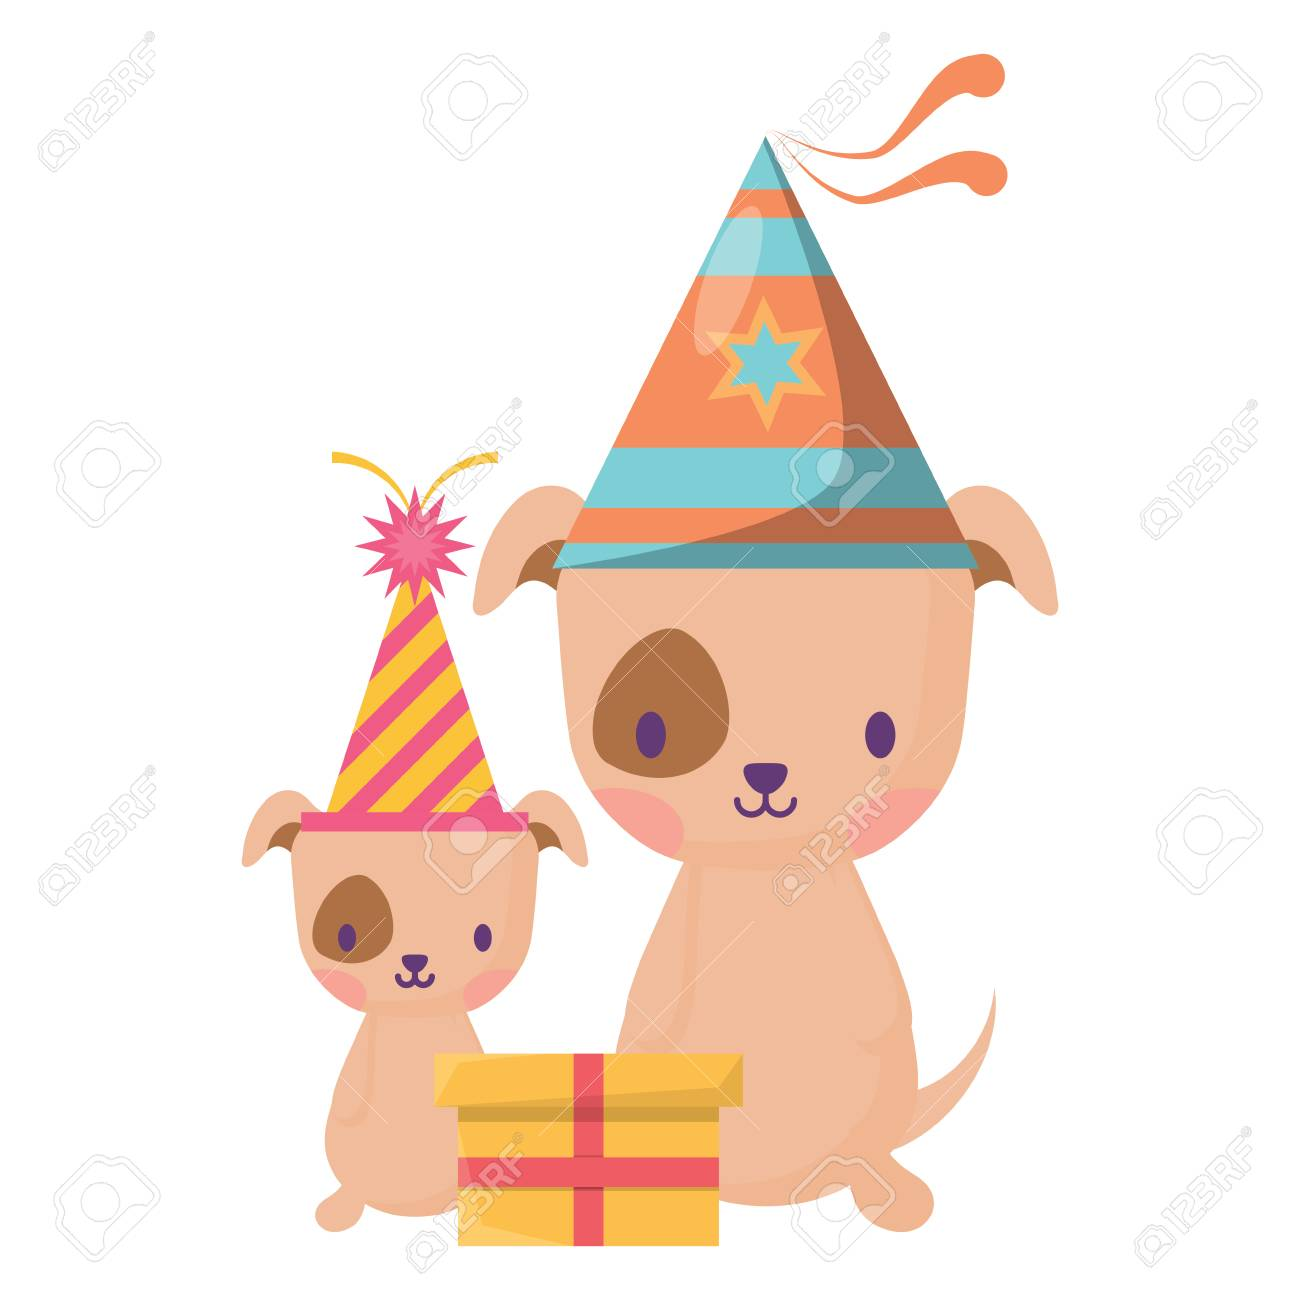 Happy Birthday Design With Cute Dogs Party Hats Over White Background Vector Illustration Standard